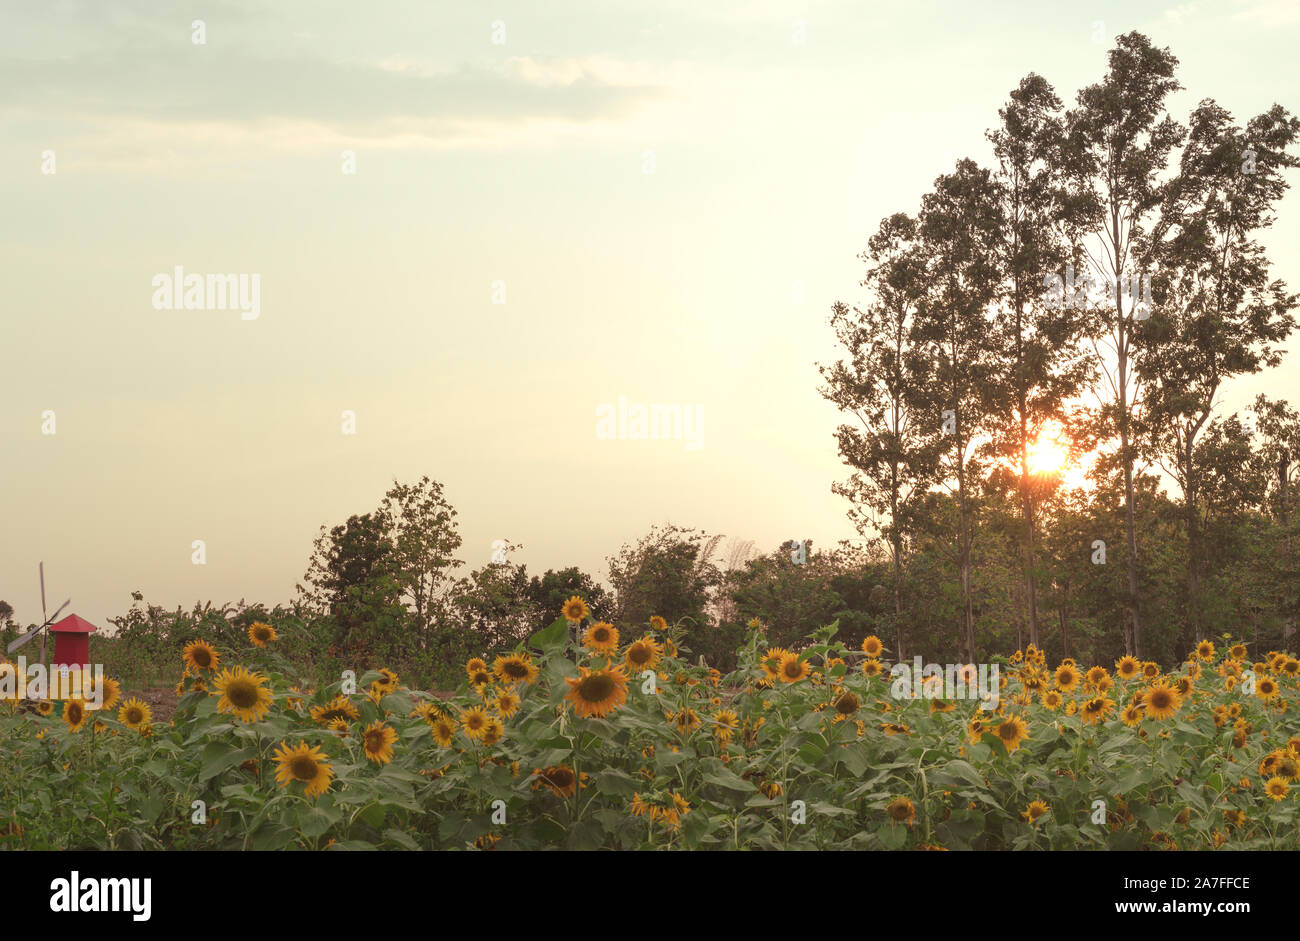 View of a rural countryside Sunflower farm, with a plantation field next to a forest and bright orange sunset shining through the forest trees Stock Photo